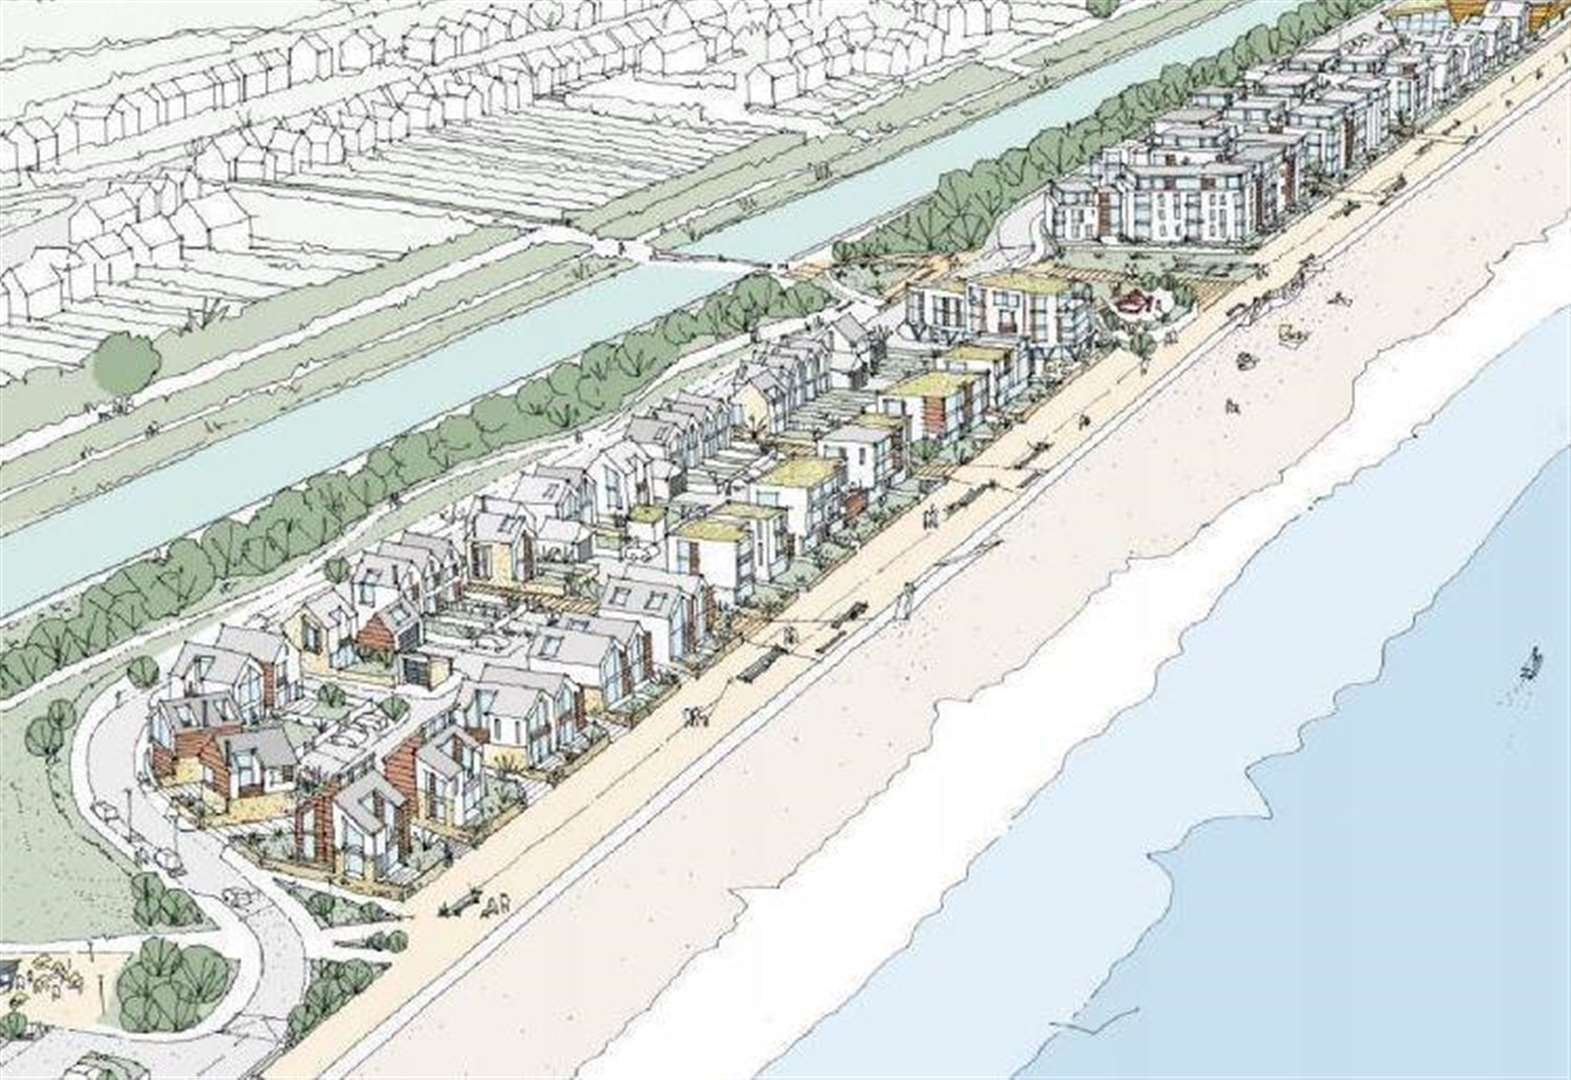 Council approves 150 seafront homes